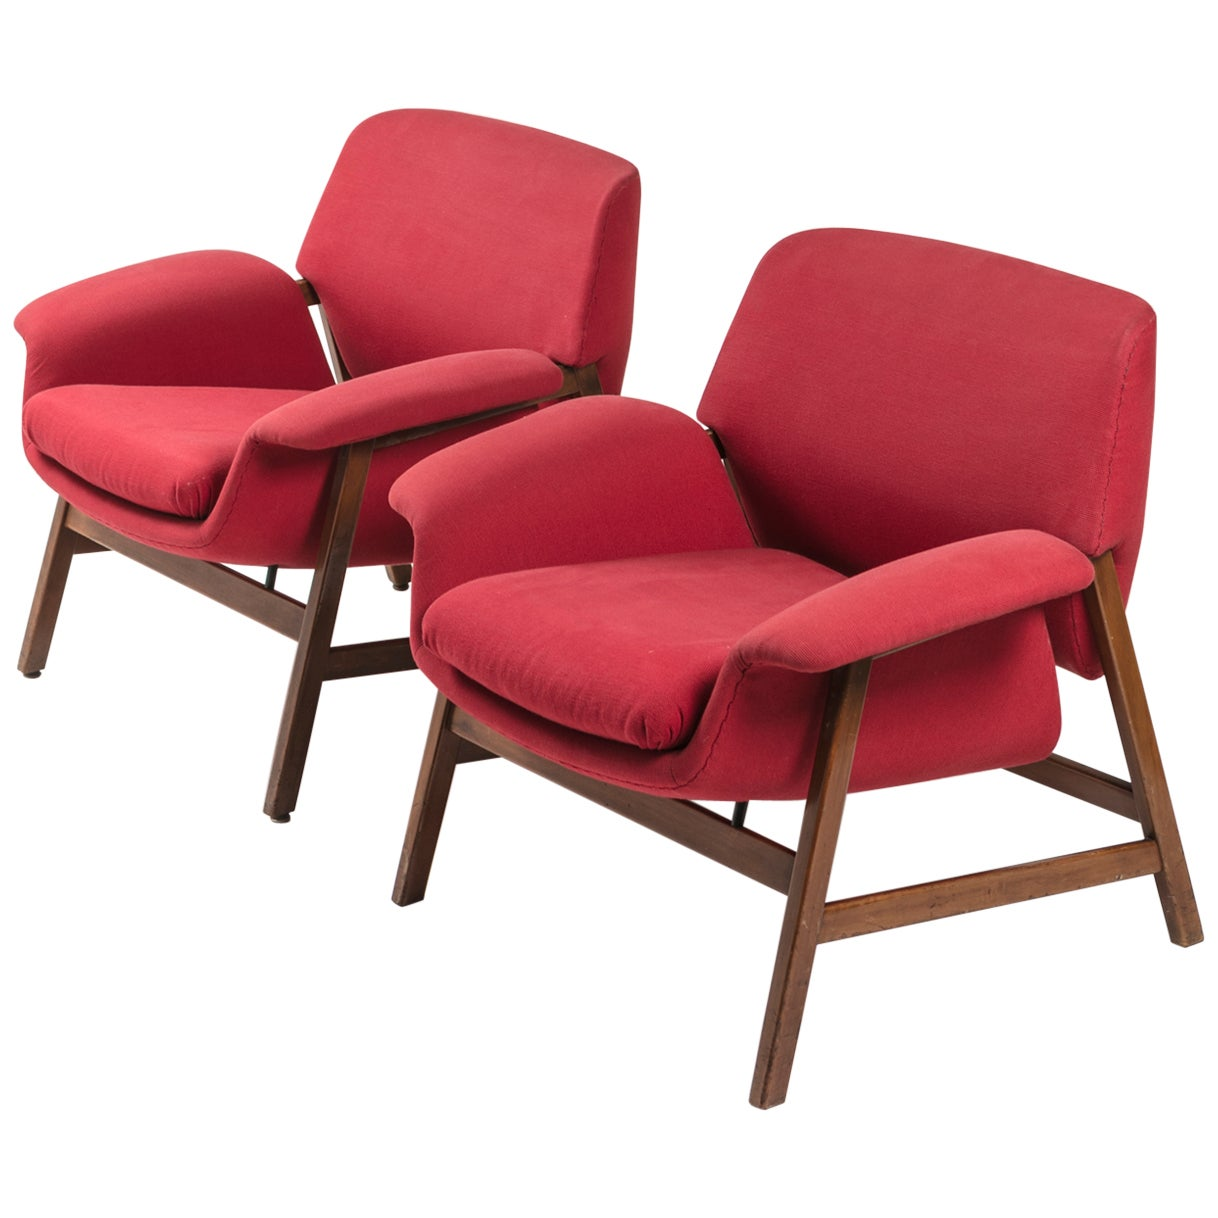 Pair of Armchairs by Gianfranco Frattini for Cassina